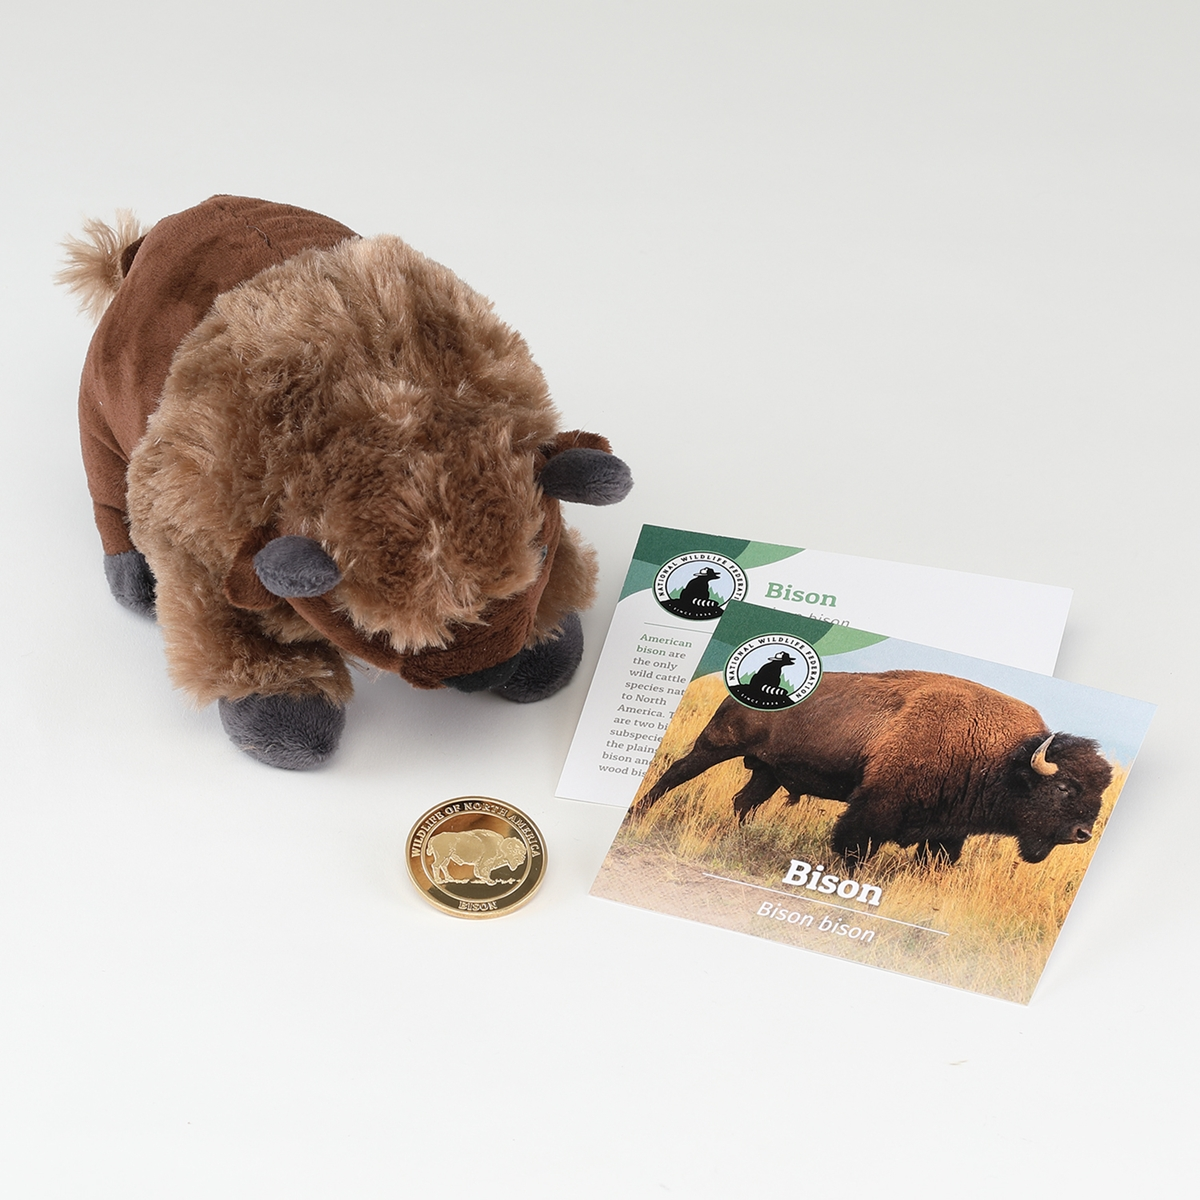 Bison Collector Coin